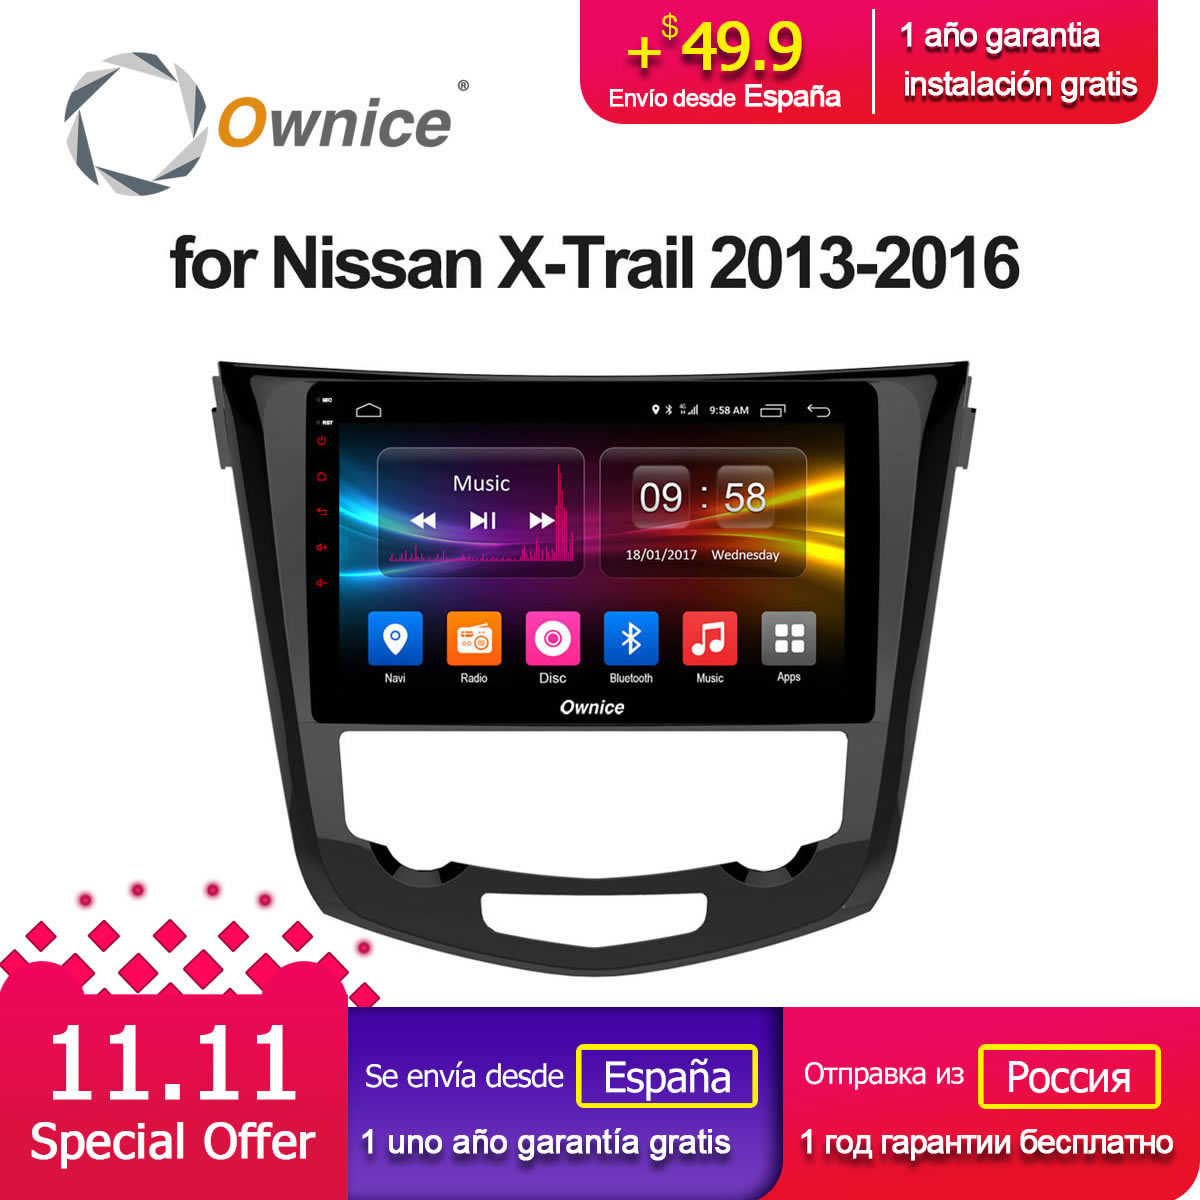 Ownice C500 + G10 10.1 ''Android 8.1 Octa base Pour Nissan X-TRAIL 2013 2014 2015 2016 Voiture Radio GPS navi DVD Lecteur 2g/32g 4g LTE